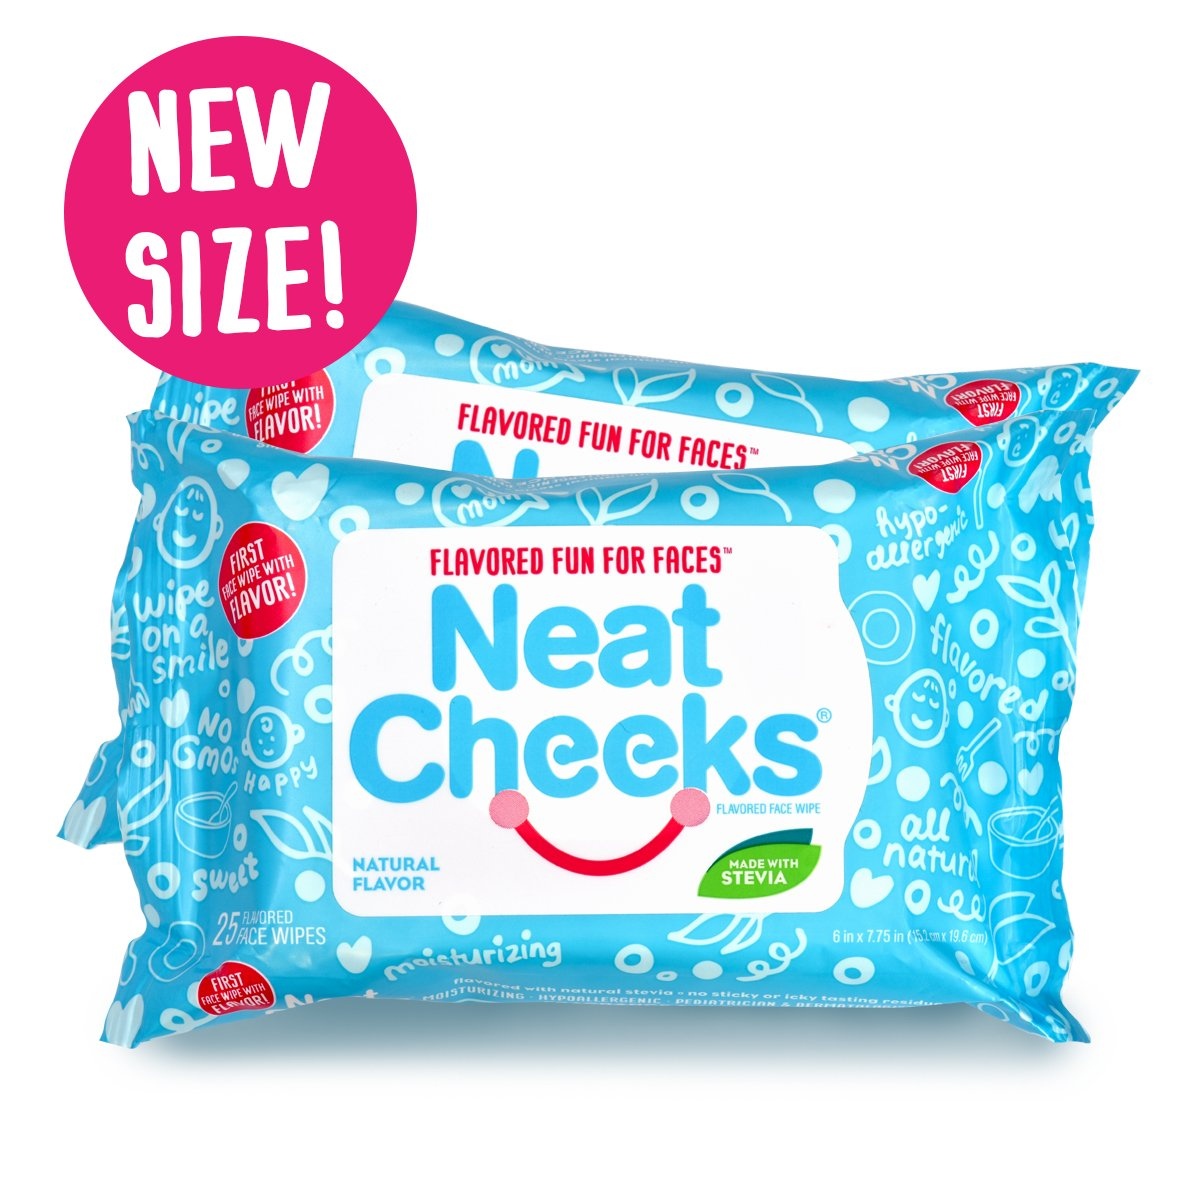 The Original NeatCheeks Natural Flavored Baby Face Wipes for Sensitive Skin - As seen on SHARK TANK! (4 Packs of 24)